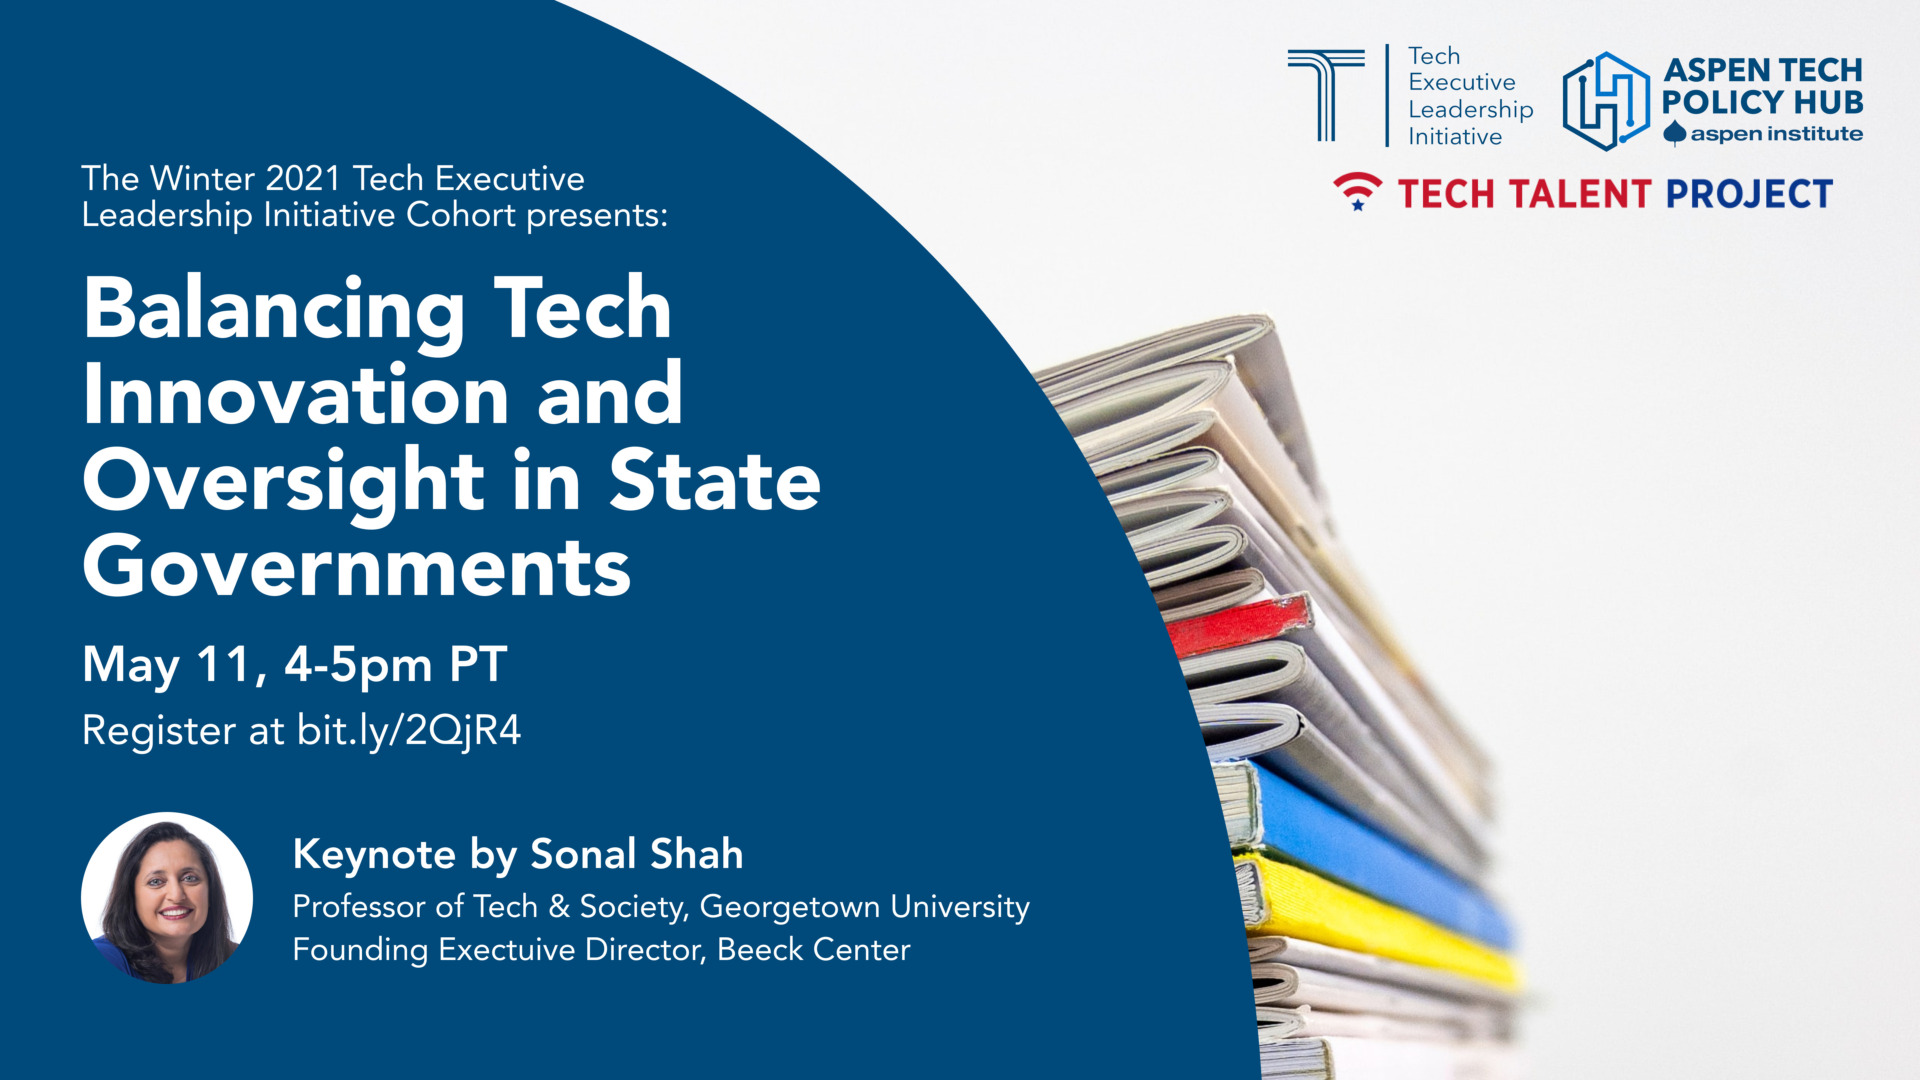 Balancing Tech Innovation and Oversight in State Governments